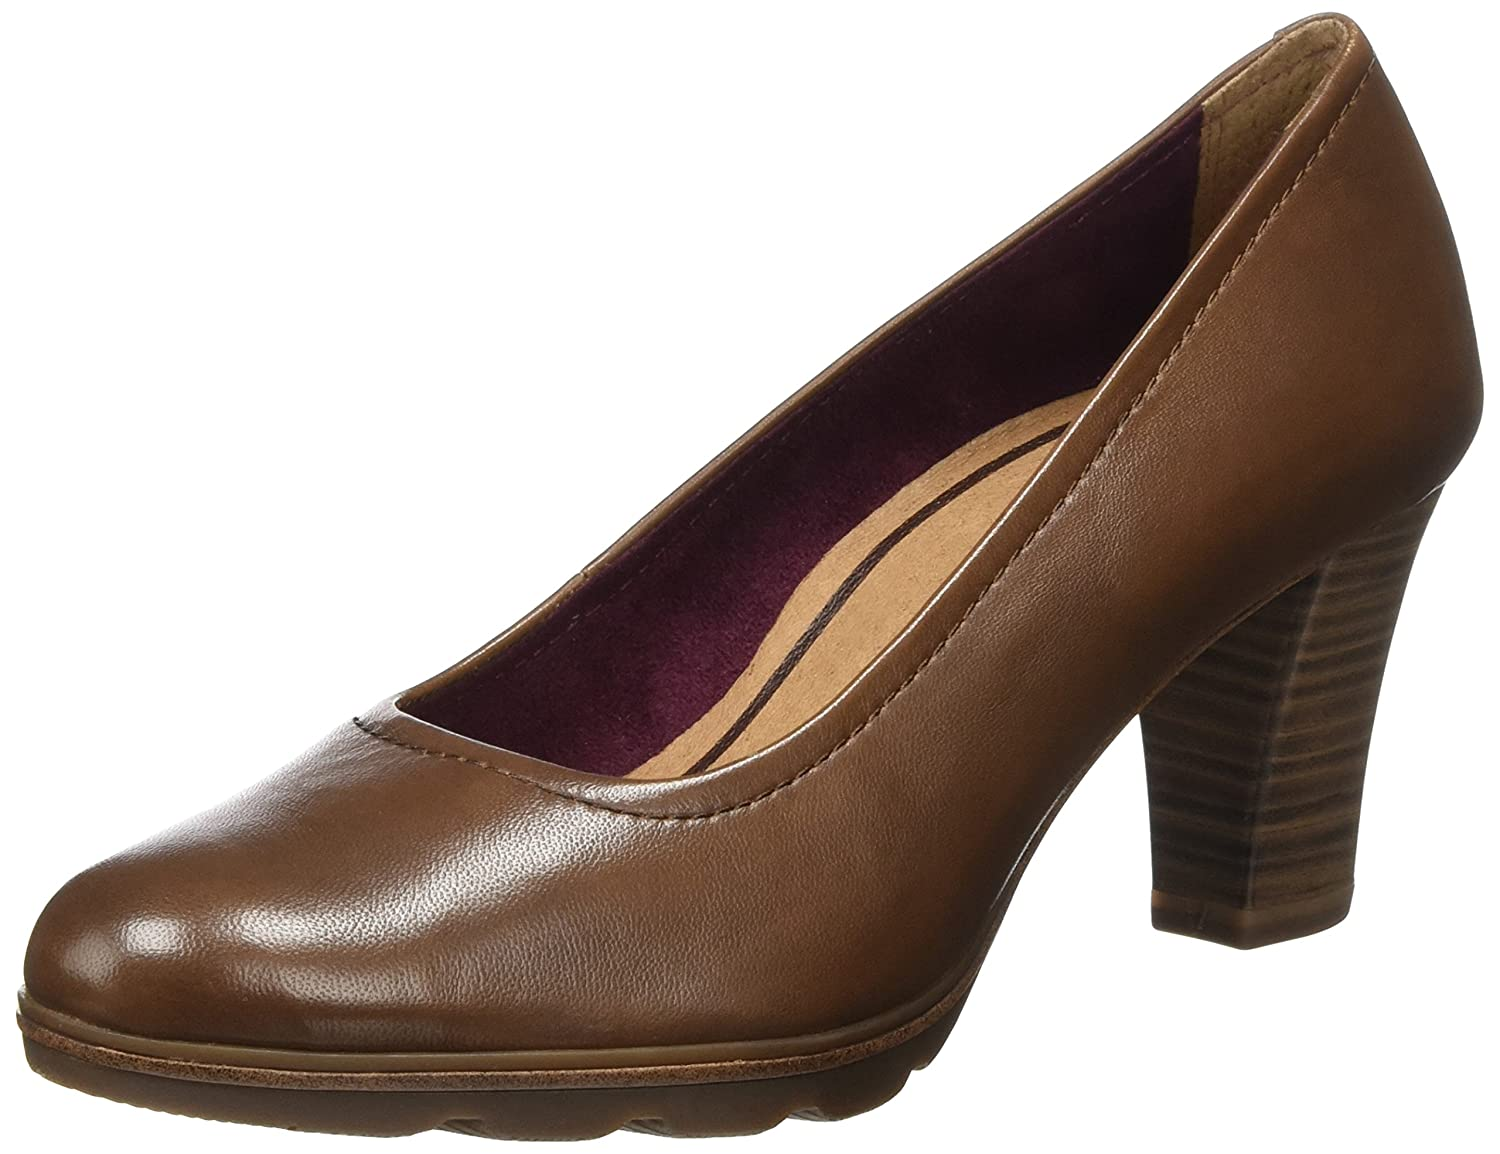 Tamaris Damen 22425 Pumps Braun (Cognac) 35 EU: